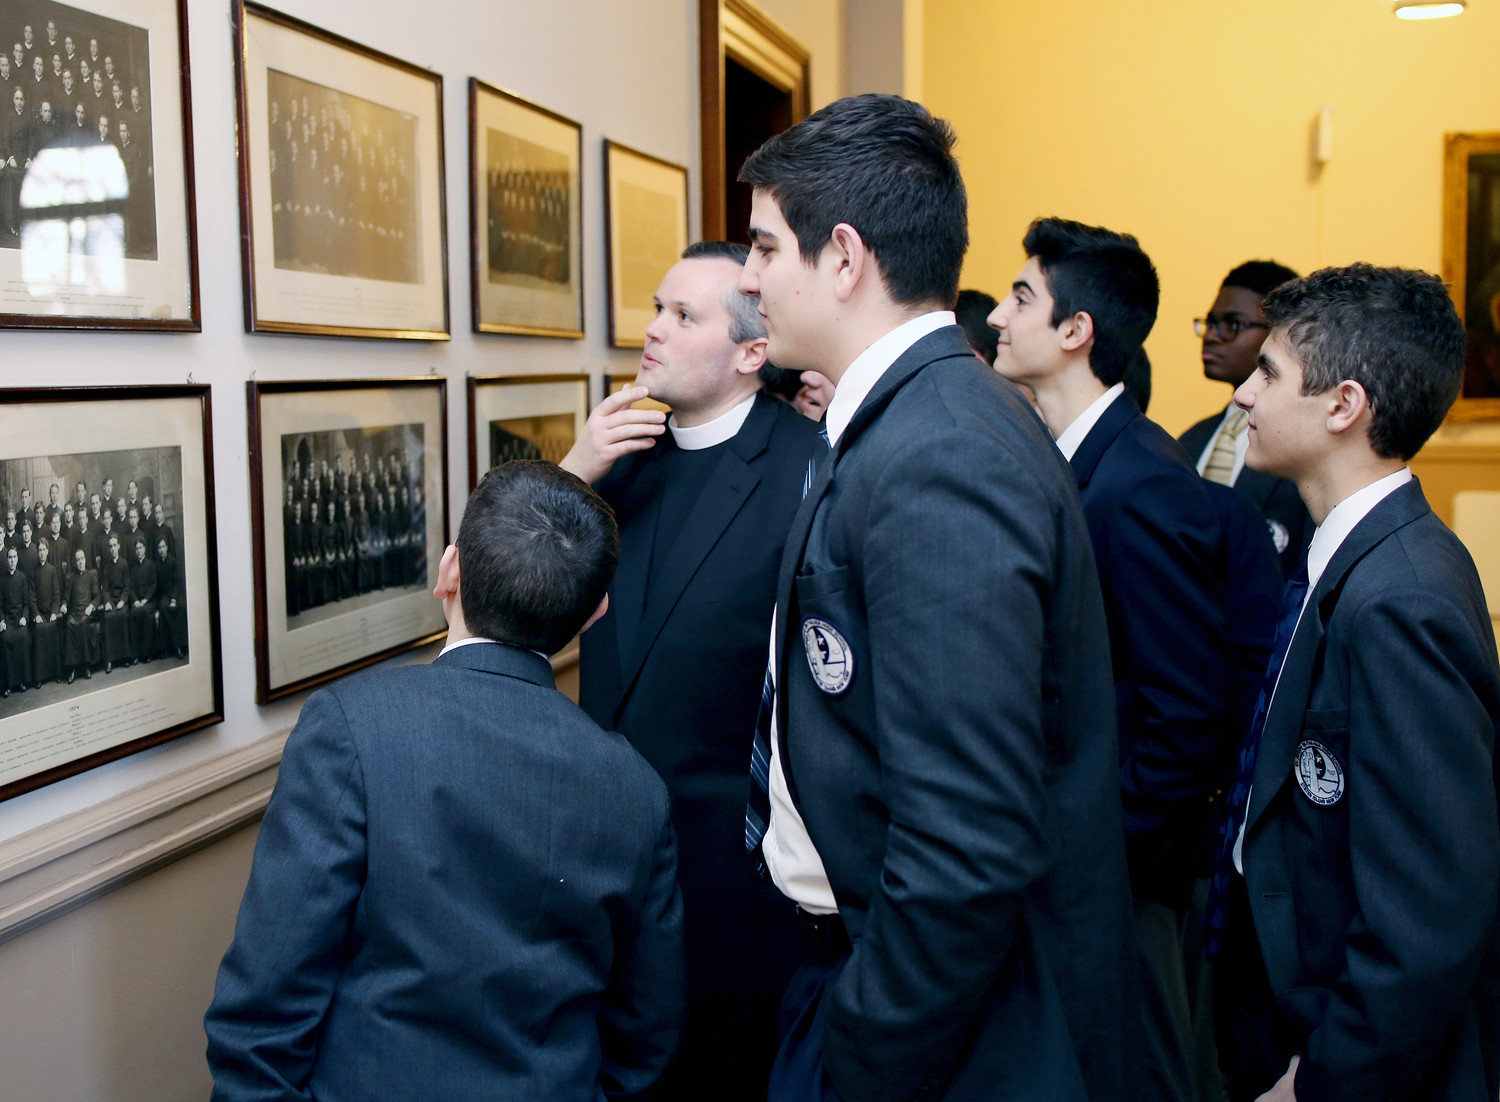 Father John McCarthy looks at photos of ordination classes at St. Joseph's Seminary with students from St. Joseph by-the-Sea High School on Staten Island, where he serves as chaplain.